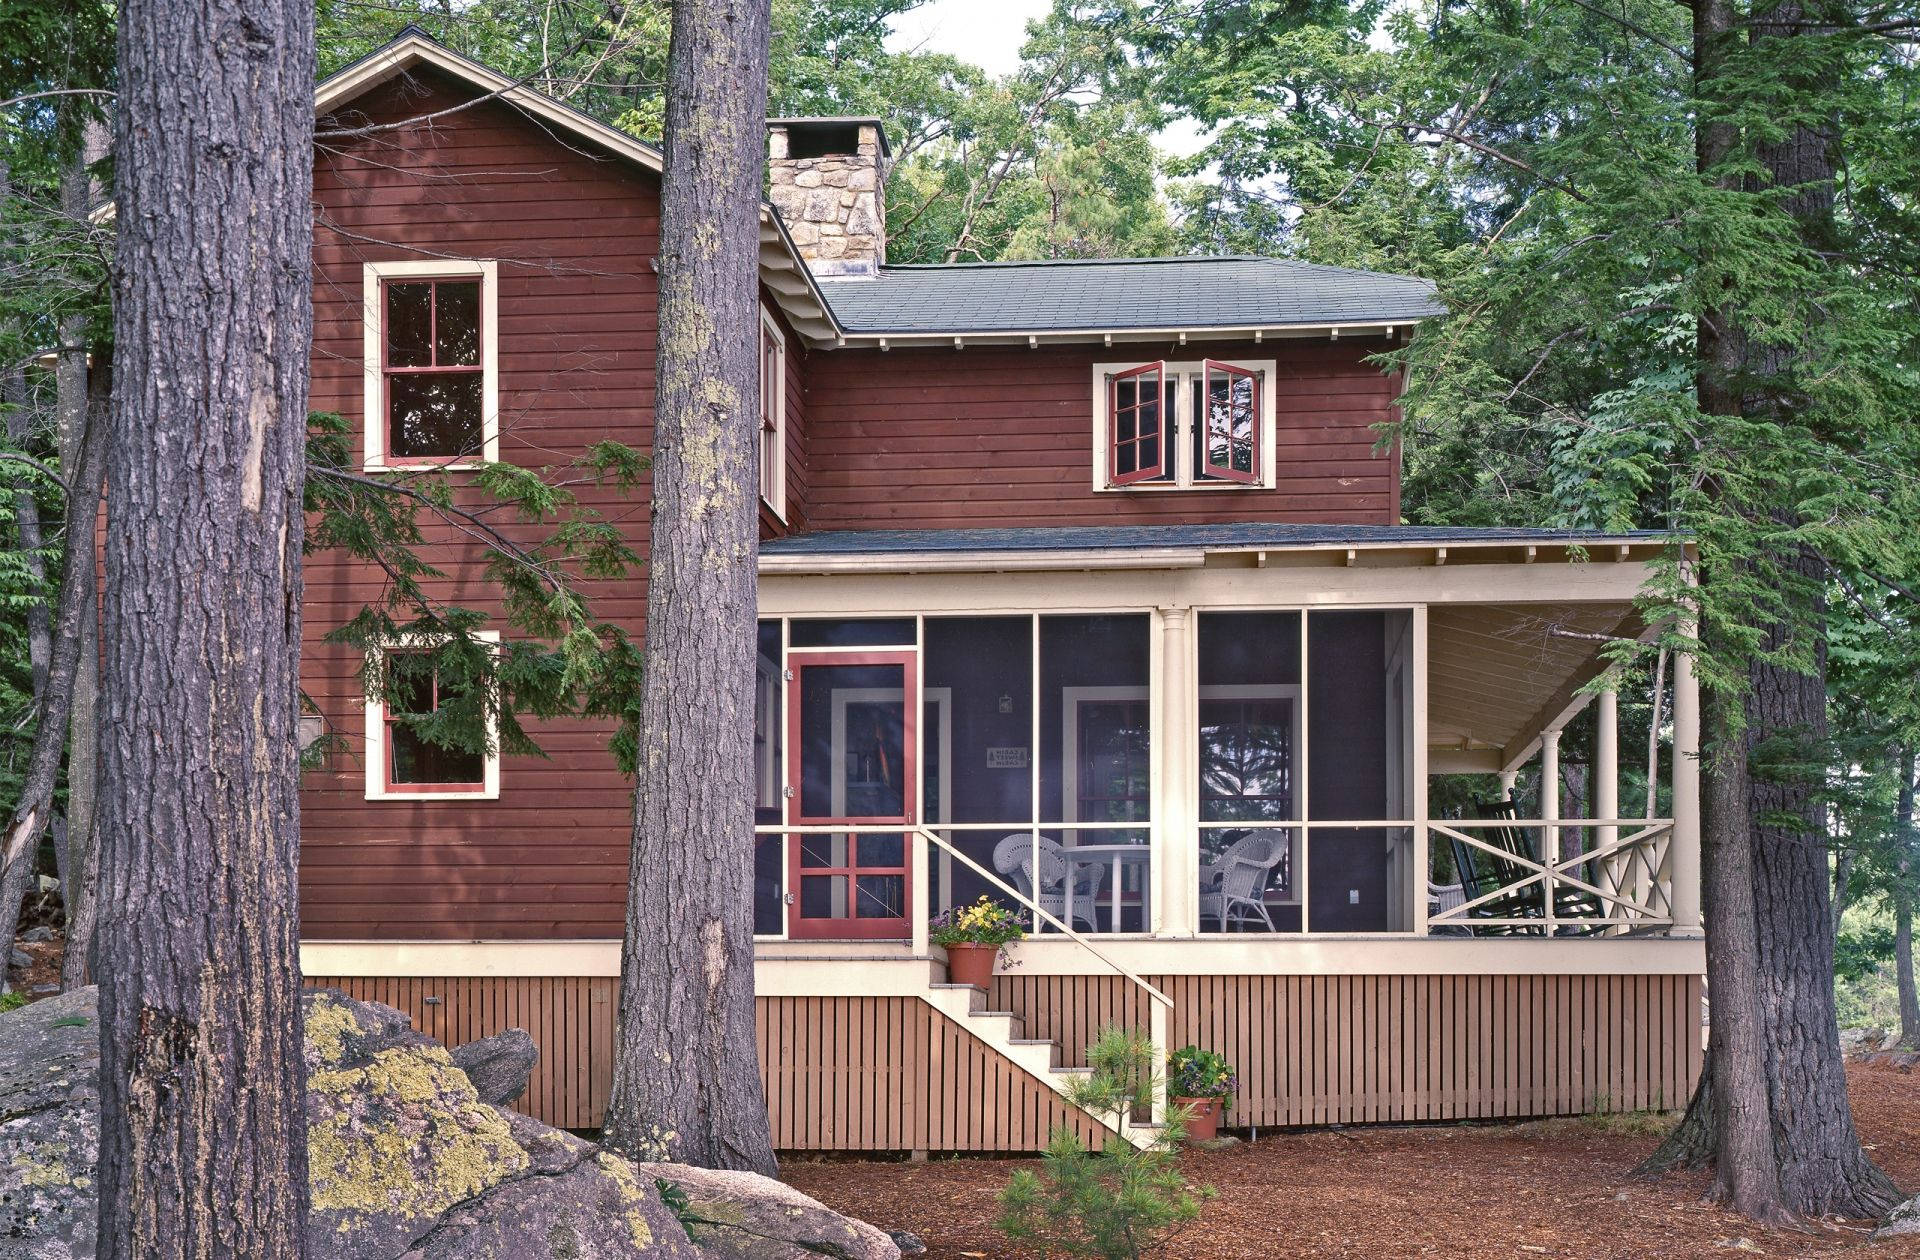 youtube cabin of a pittsburg watch cabins drone lopstick rentals nh the at through eyes